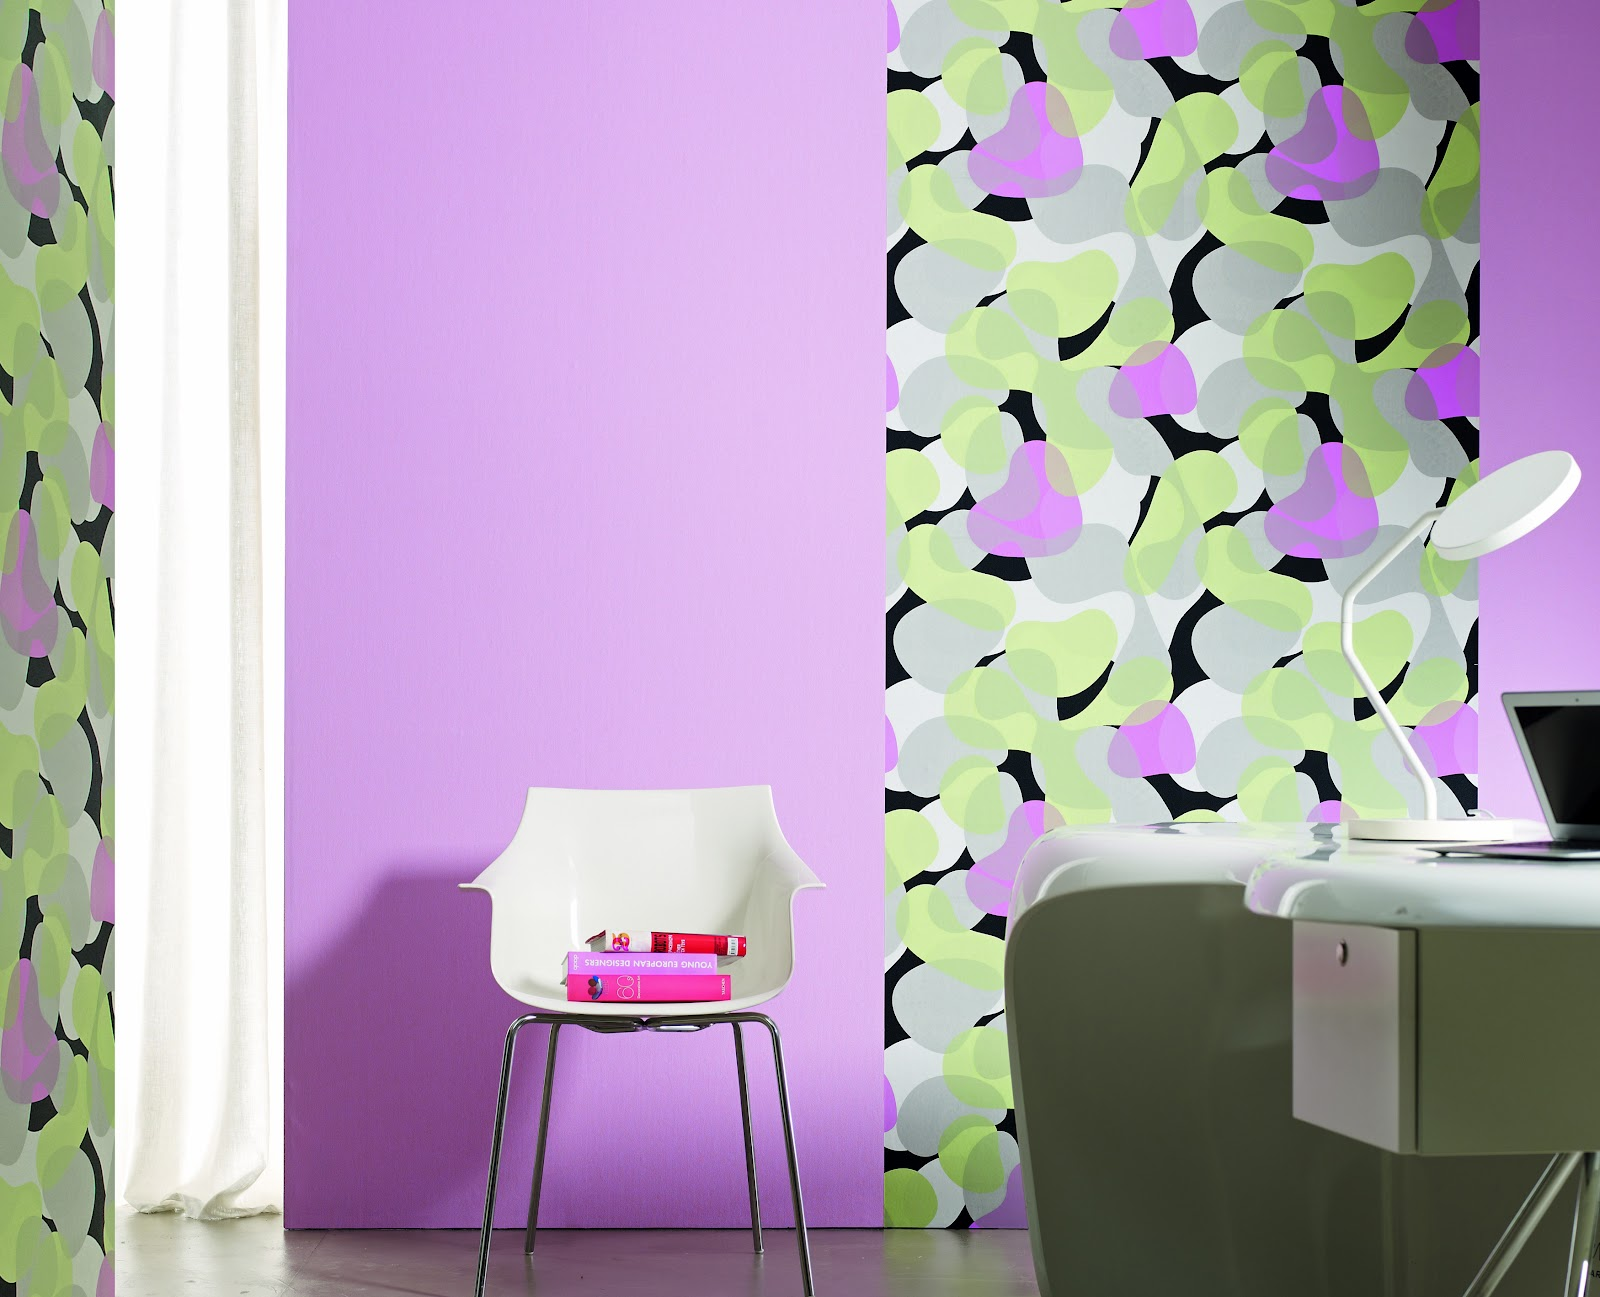 Combinar Papel Y Pintura En Paredes Affordable Dormitorio Pared